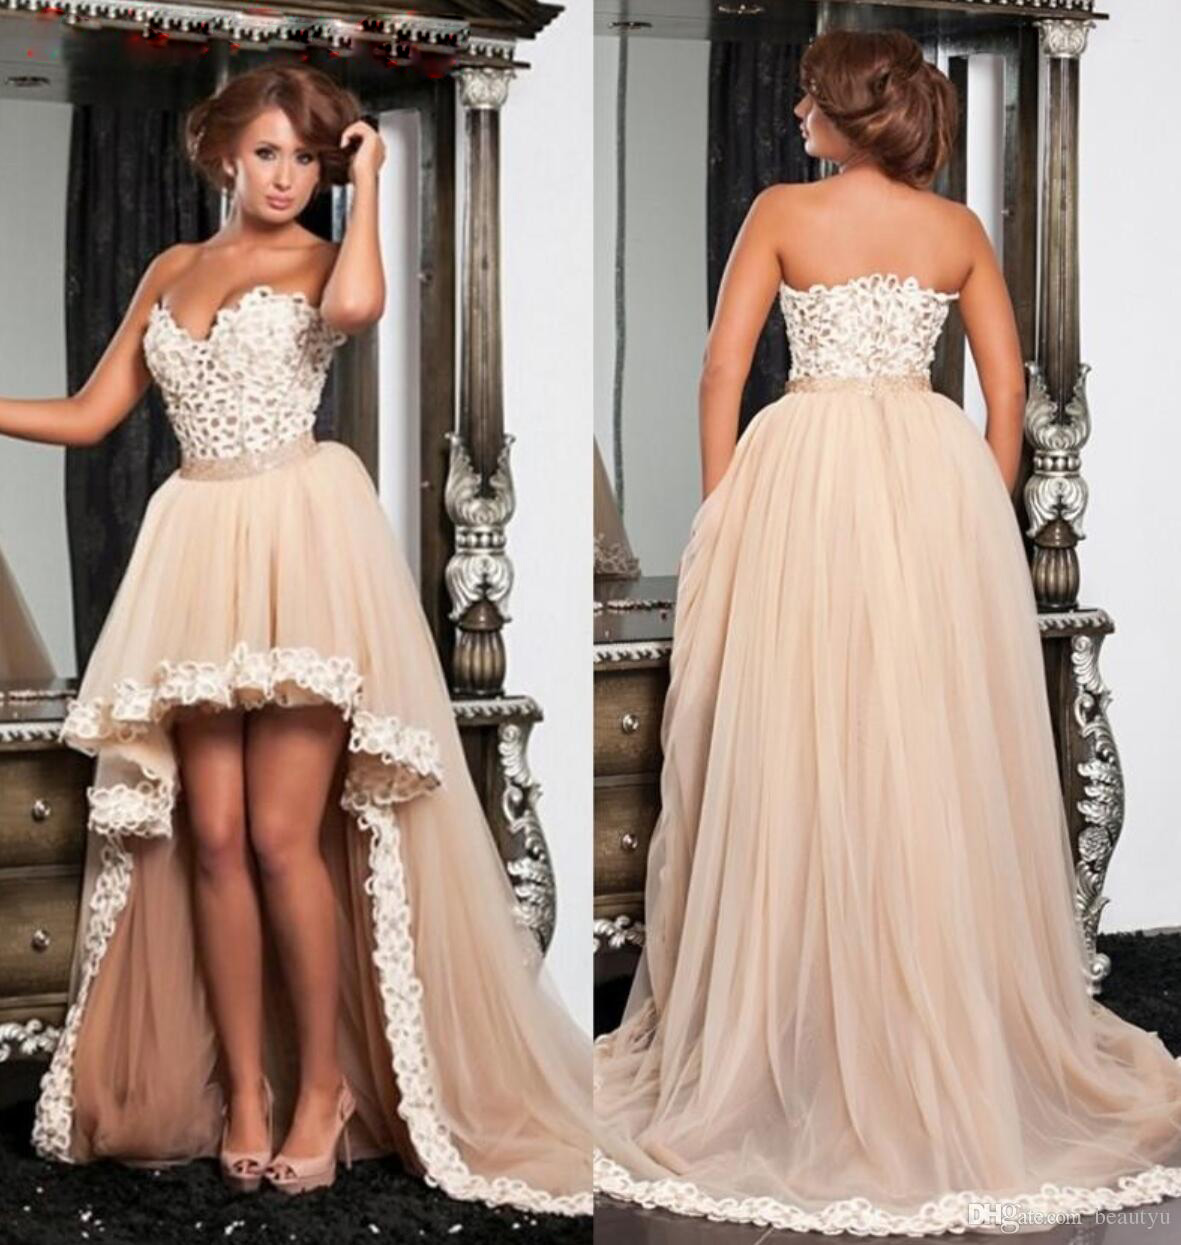 adffcfbc1b0 Cheap Prom Dresses 2017